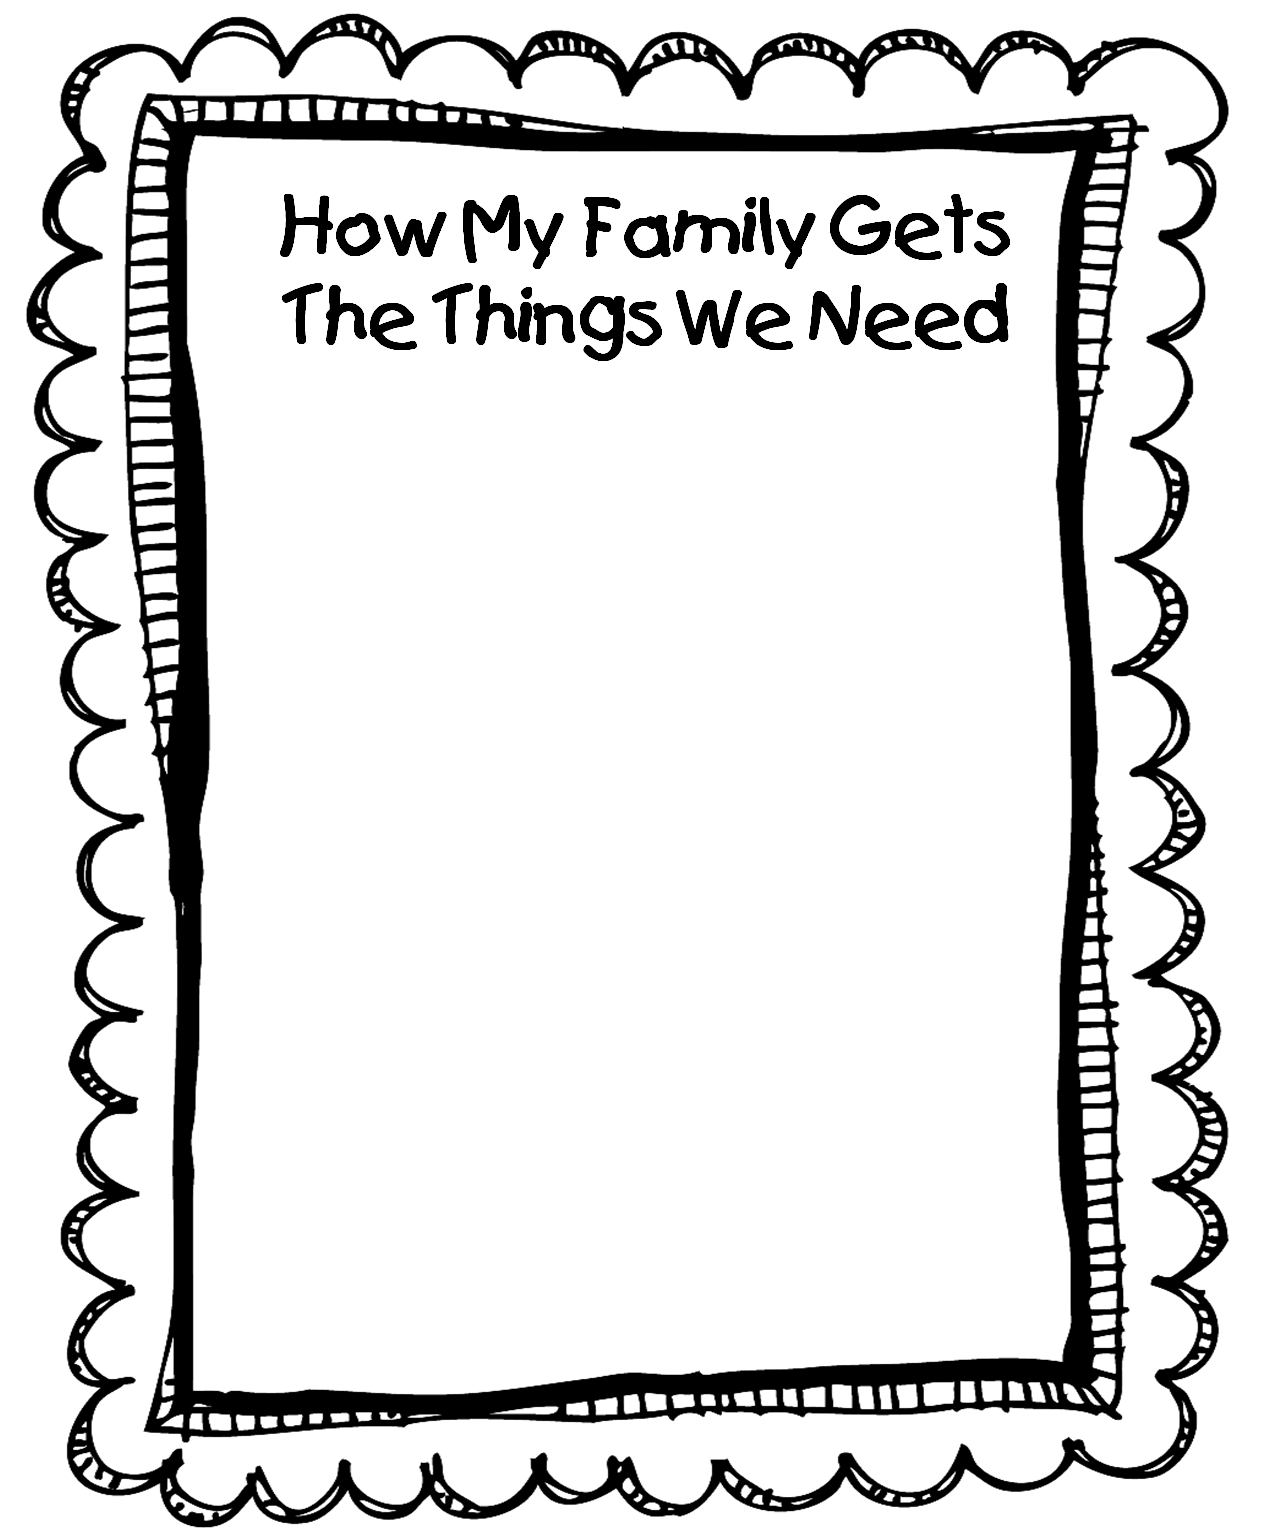 5 family needs A great lover must be committed to satisfying his wife's unique needs a great lover must be committed to satisfying his wife's unique needs subscribe to our newsletter 5 romantic needs of a woman a great lover must be committed to satisfying his wife's unique needs.